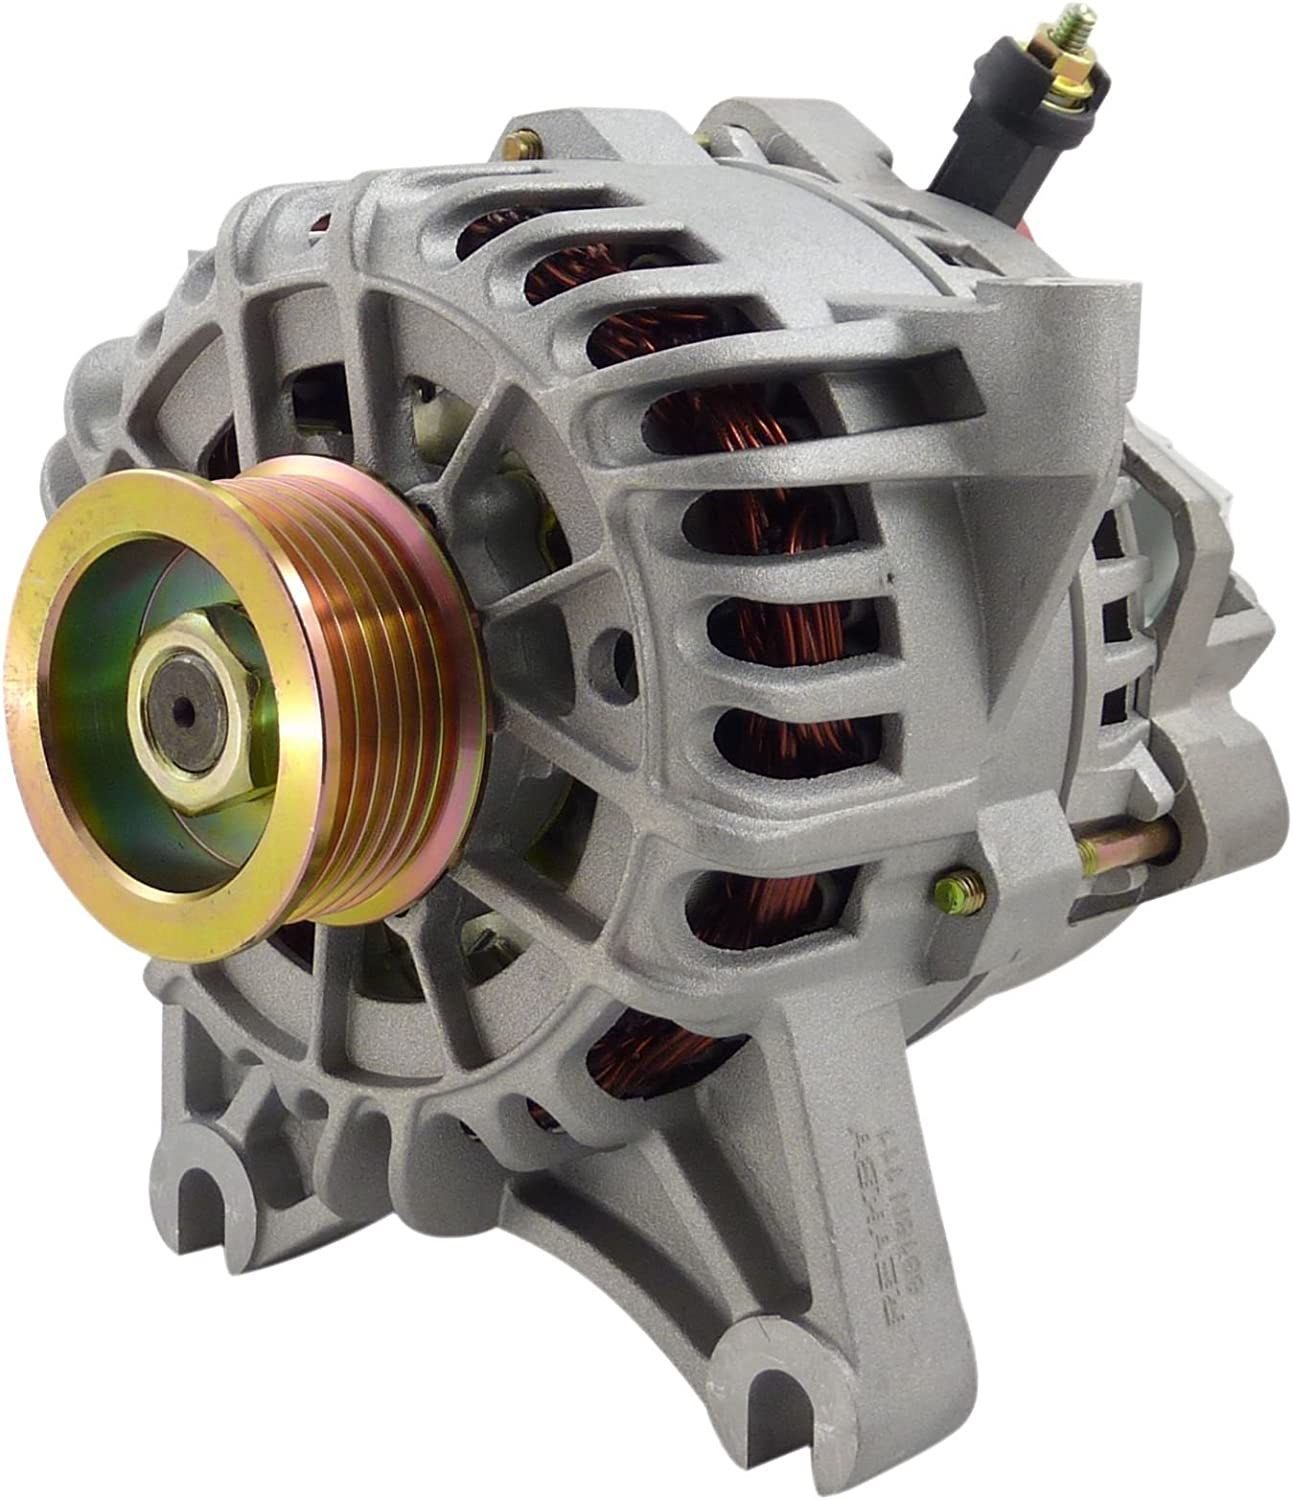 Alternator NEW Manufacturer regenerated product compatible with Long Beach Mall Ford F150 2006 2004 2005 4.6 5.4